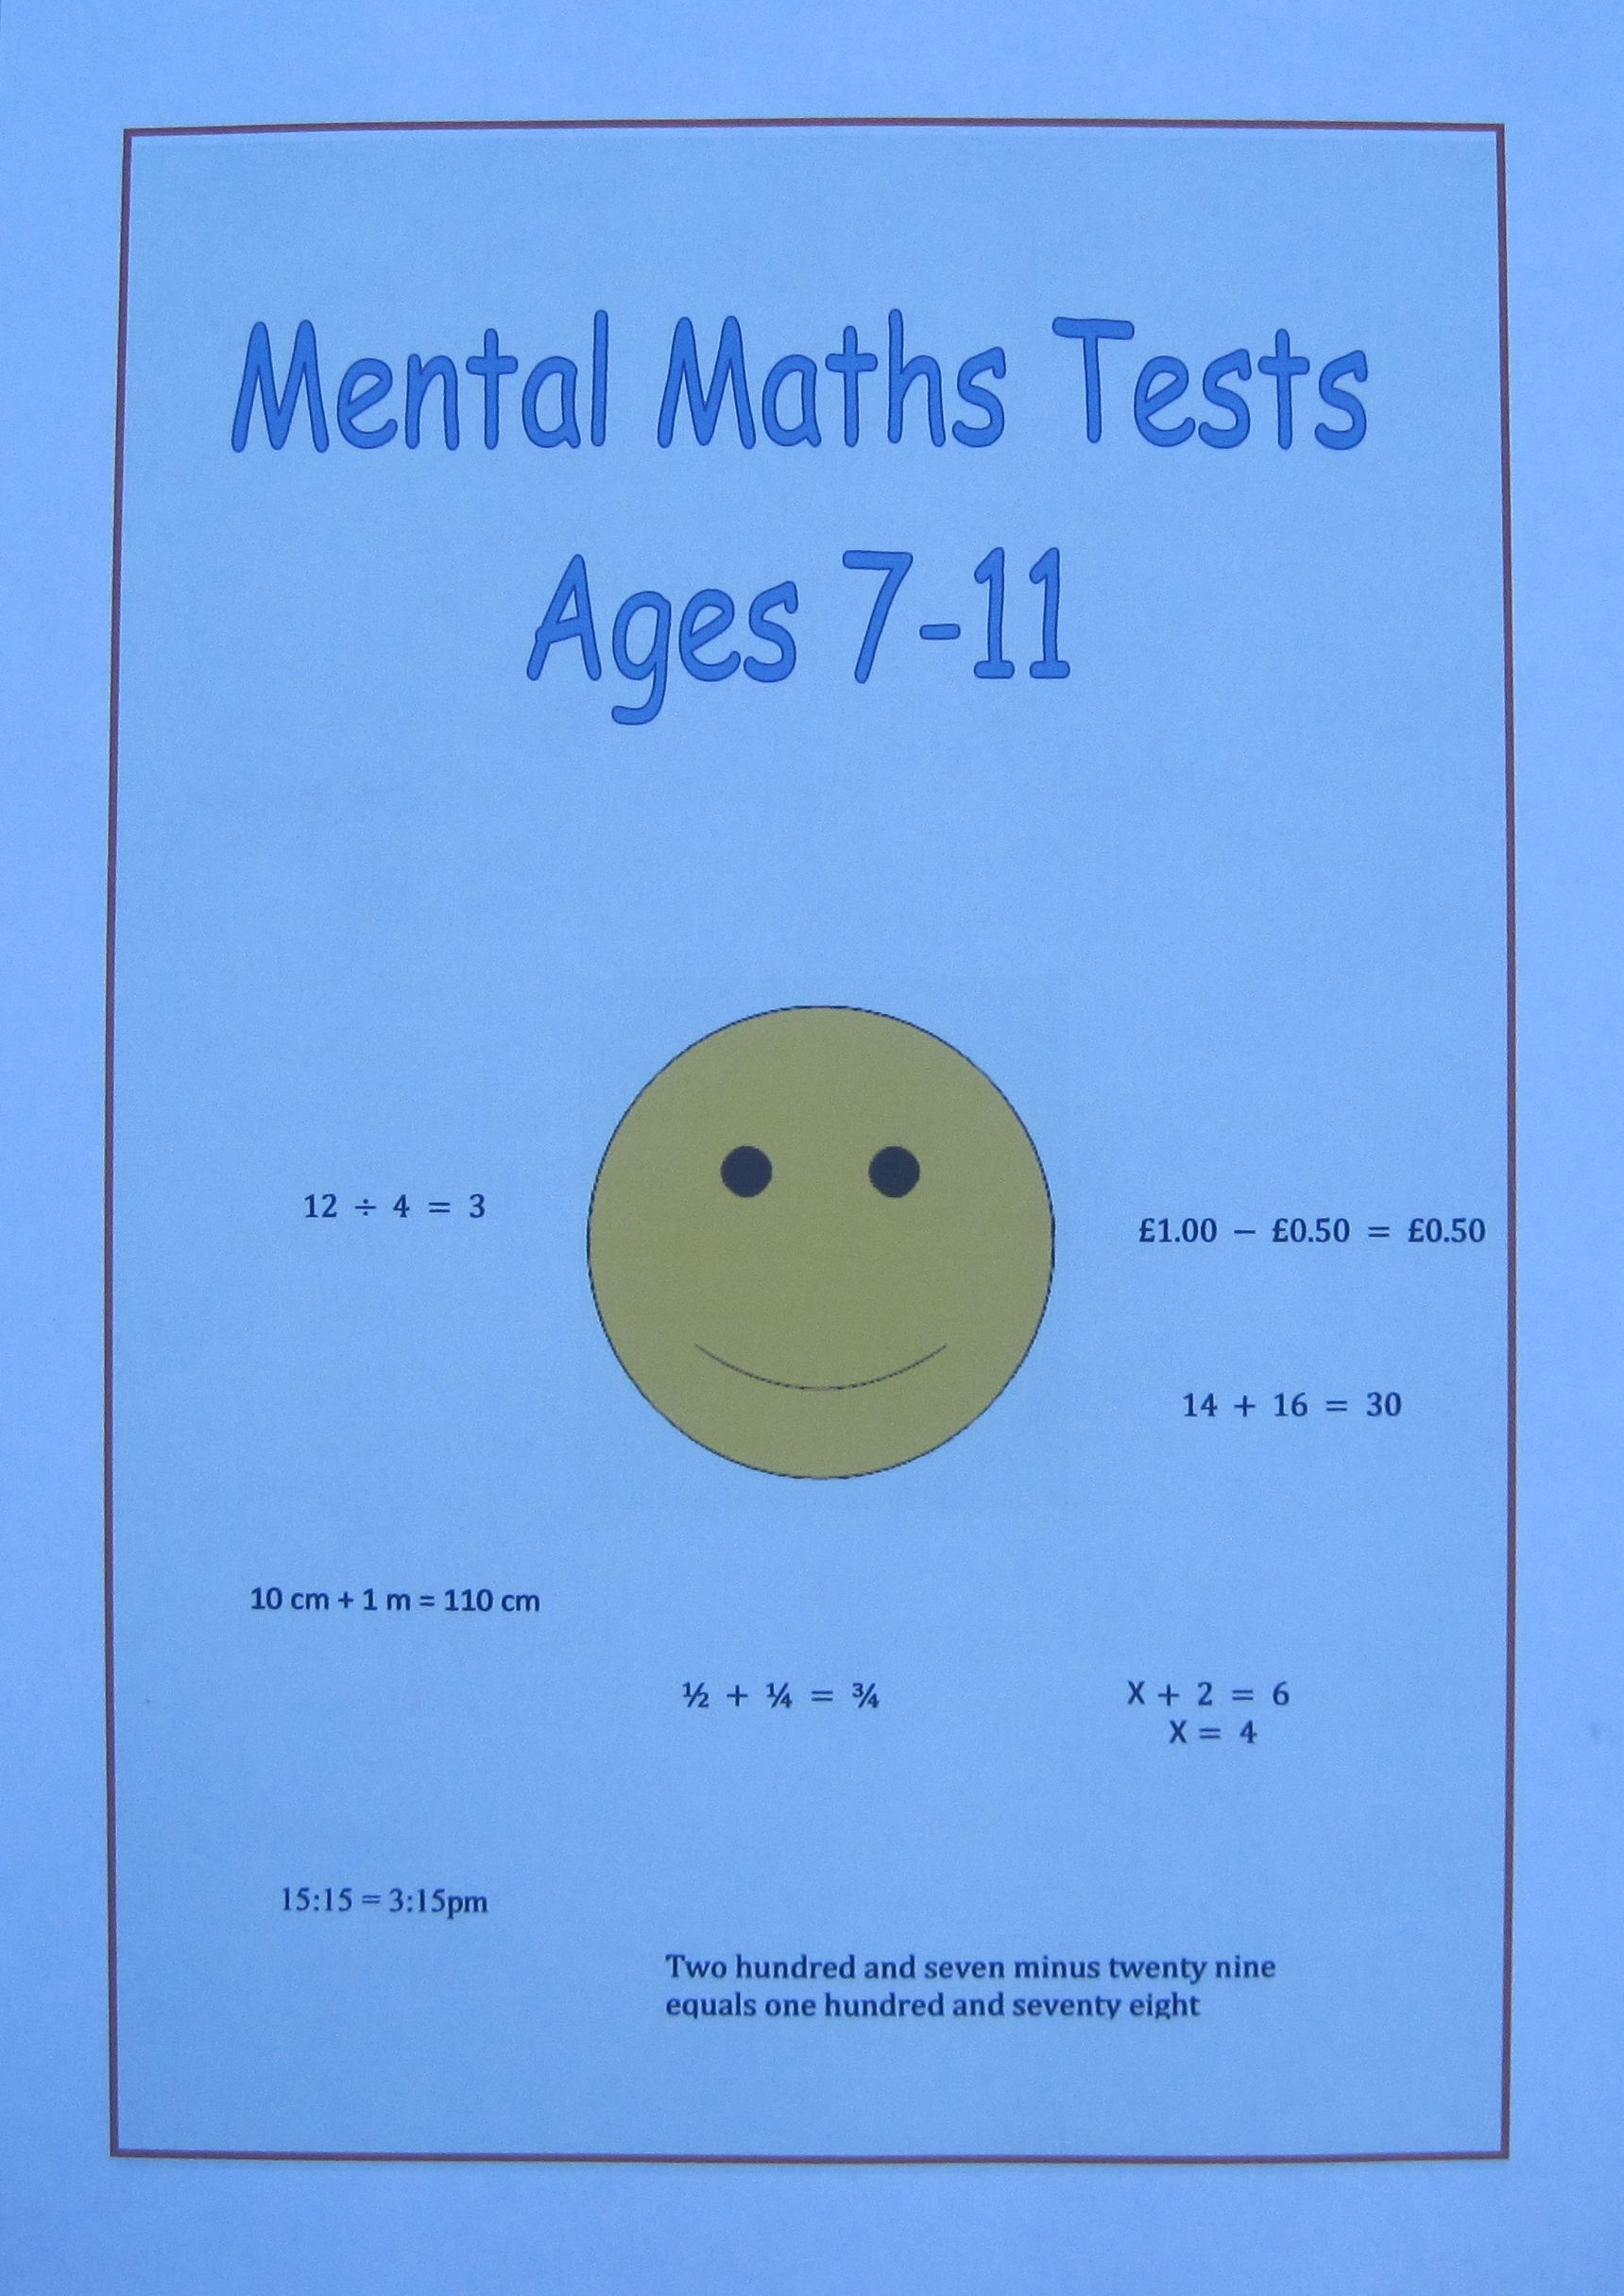 Mental Maths Tests for each year group aged 7, 8, 9, 10 and 11 years ...